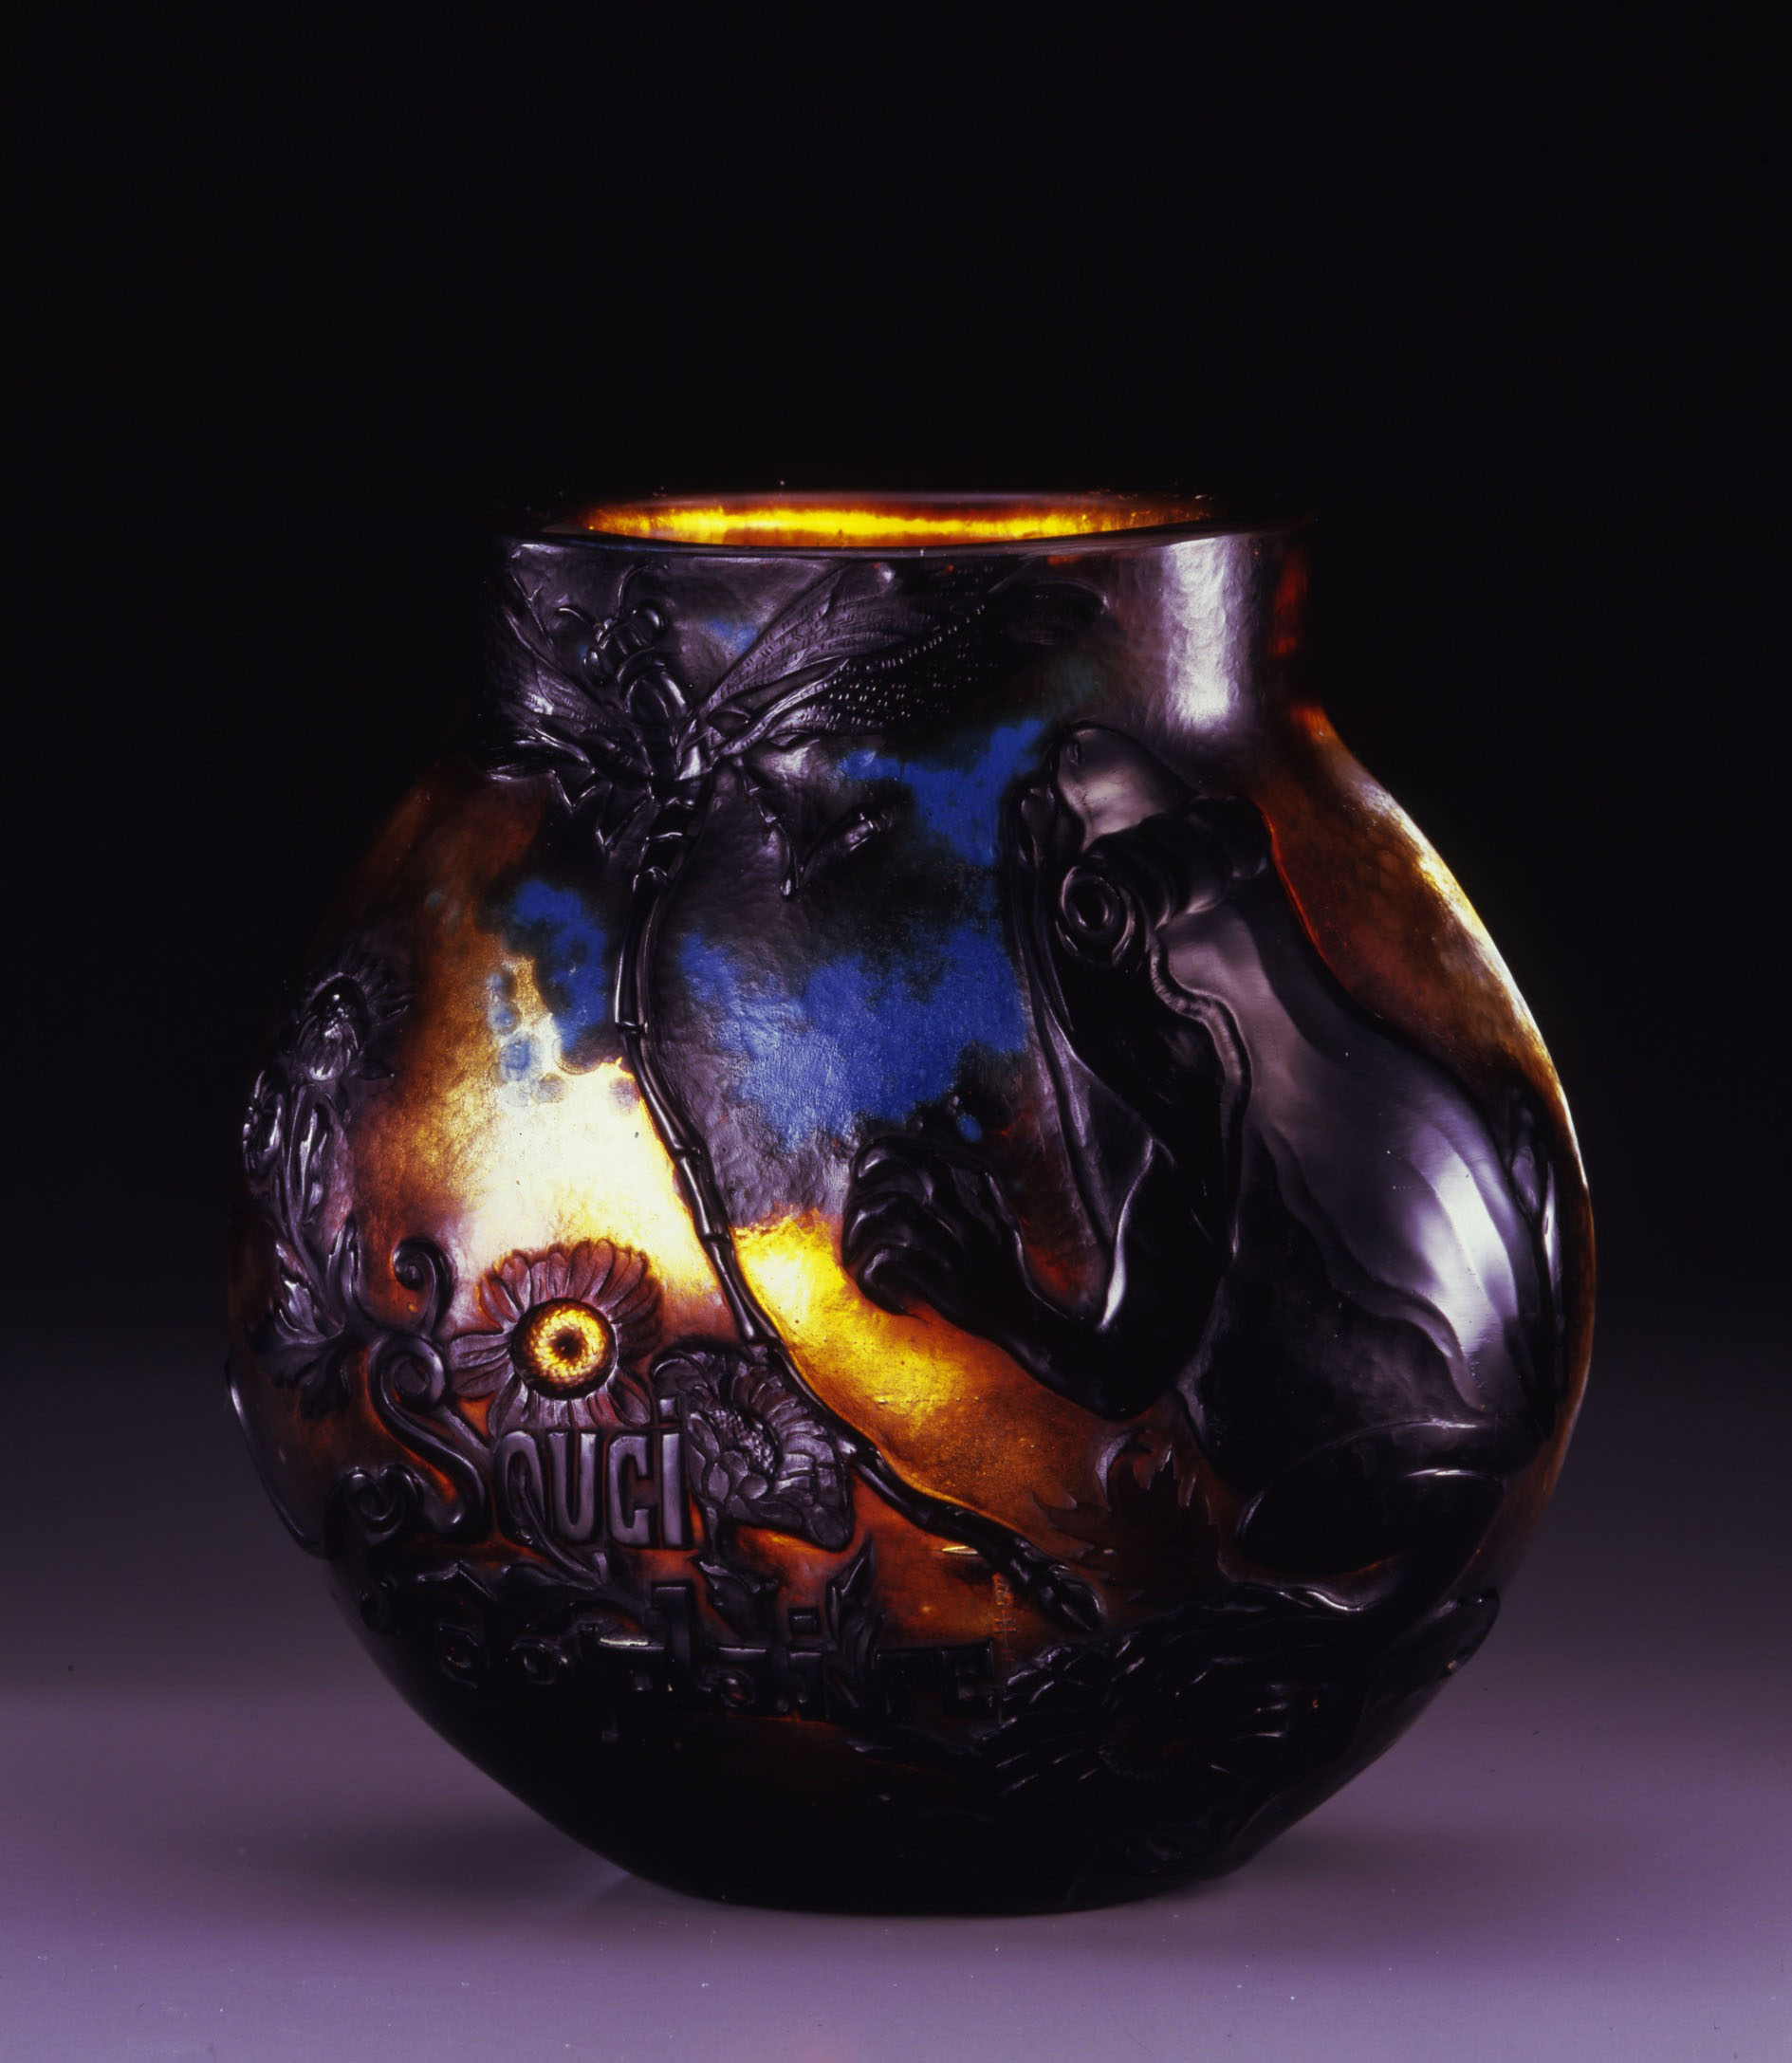 Vase, 'Souci de plaire' by Emile Galle, | KITAZAWA MUSEUM OF ART